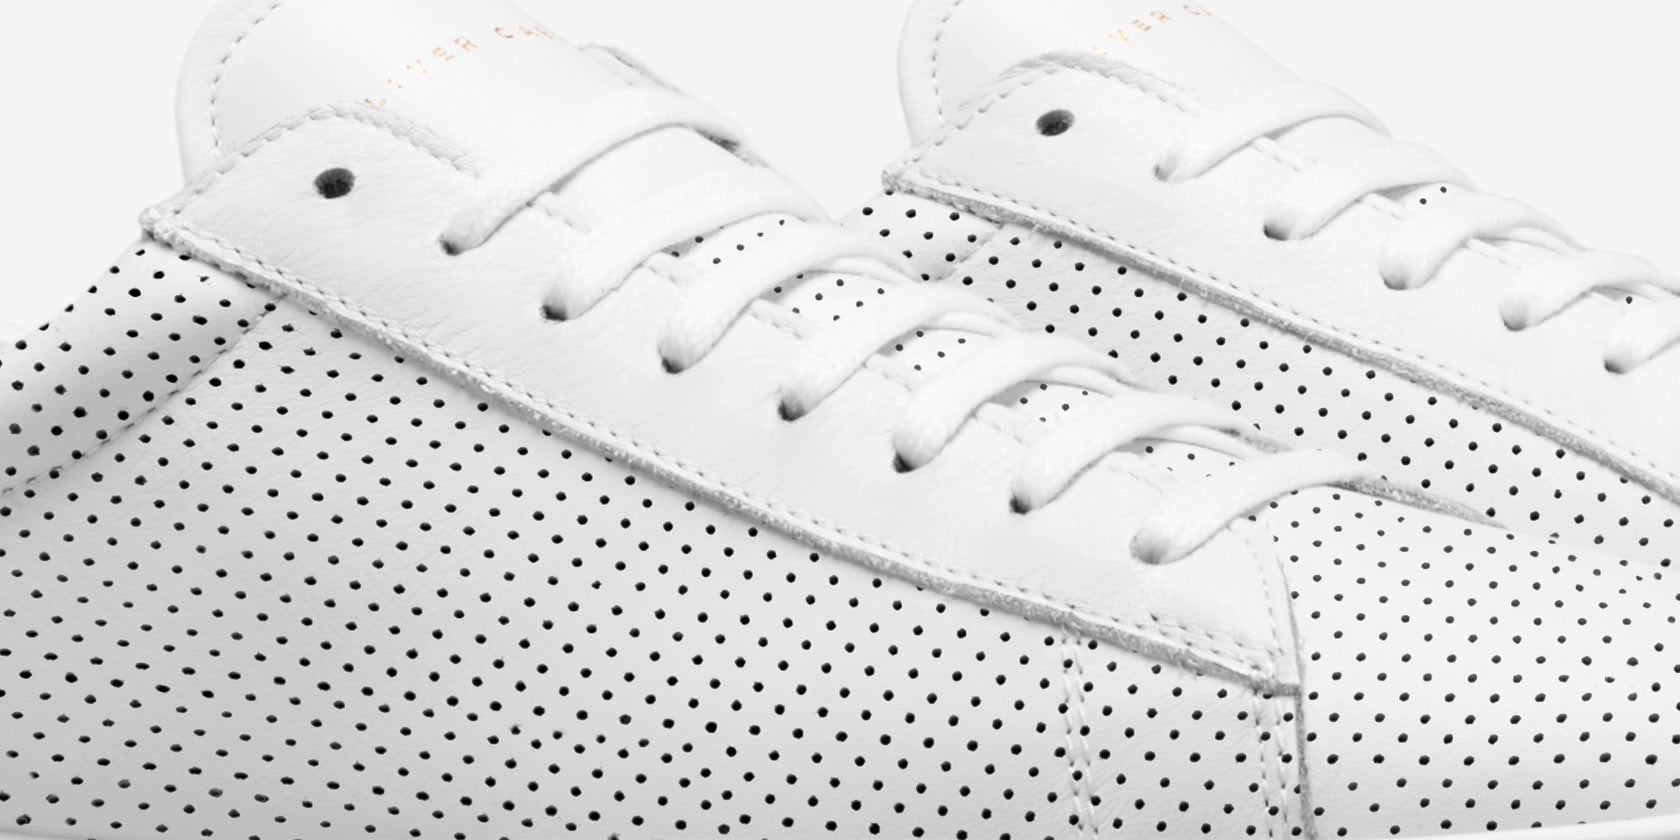 Design Details for Low 1 | Perforated White